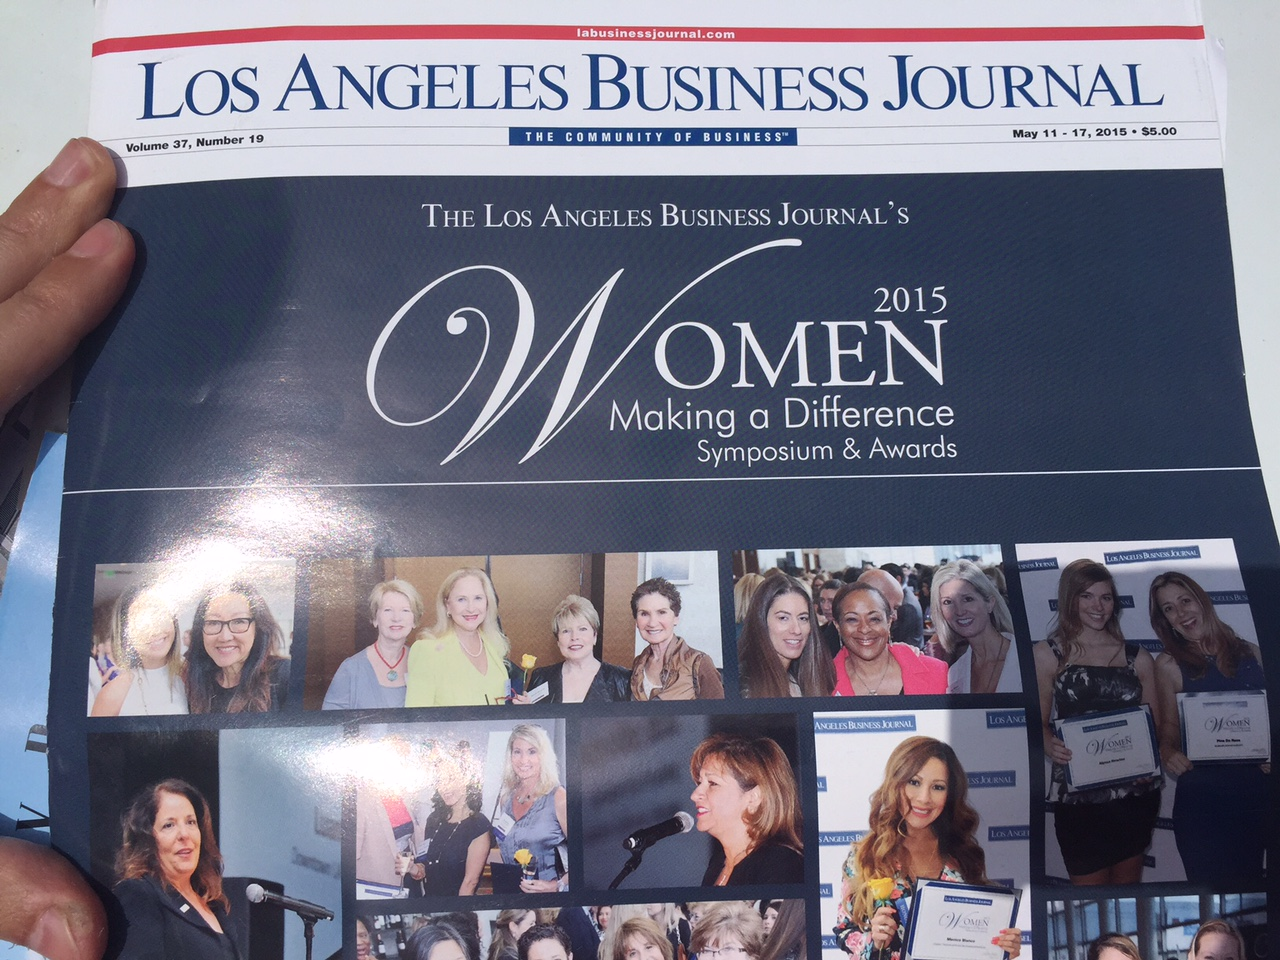 LA business Journal pic of LS